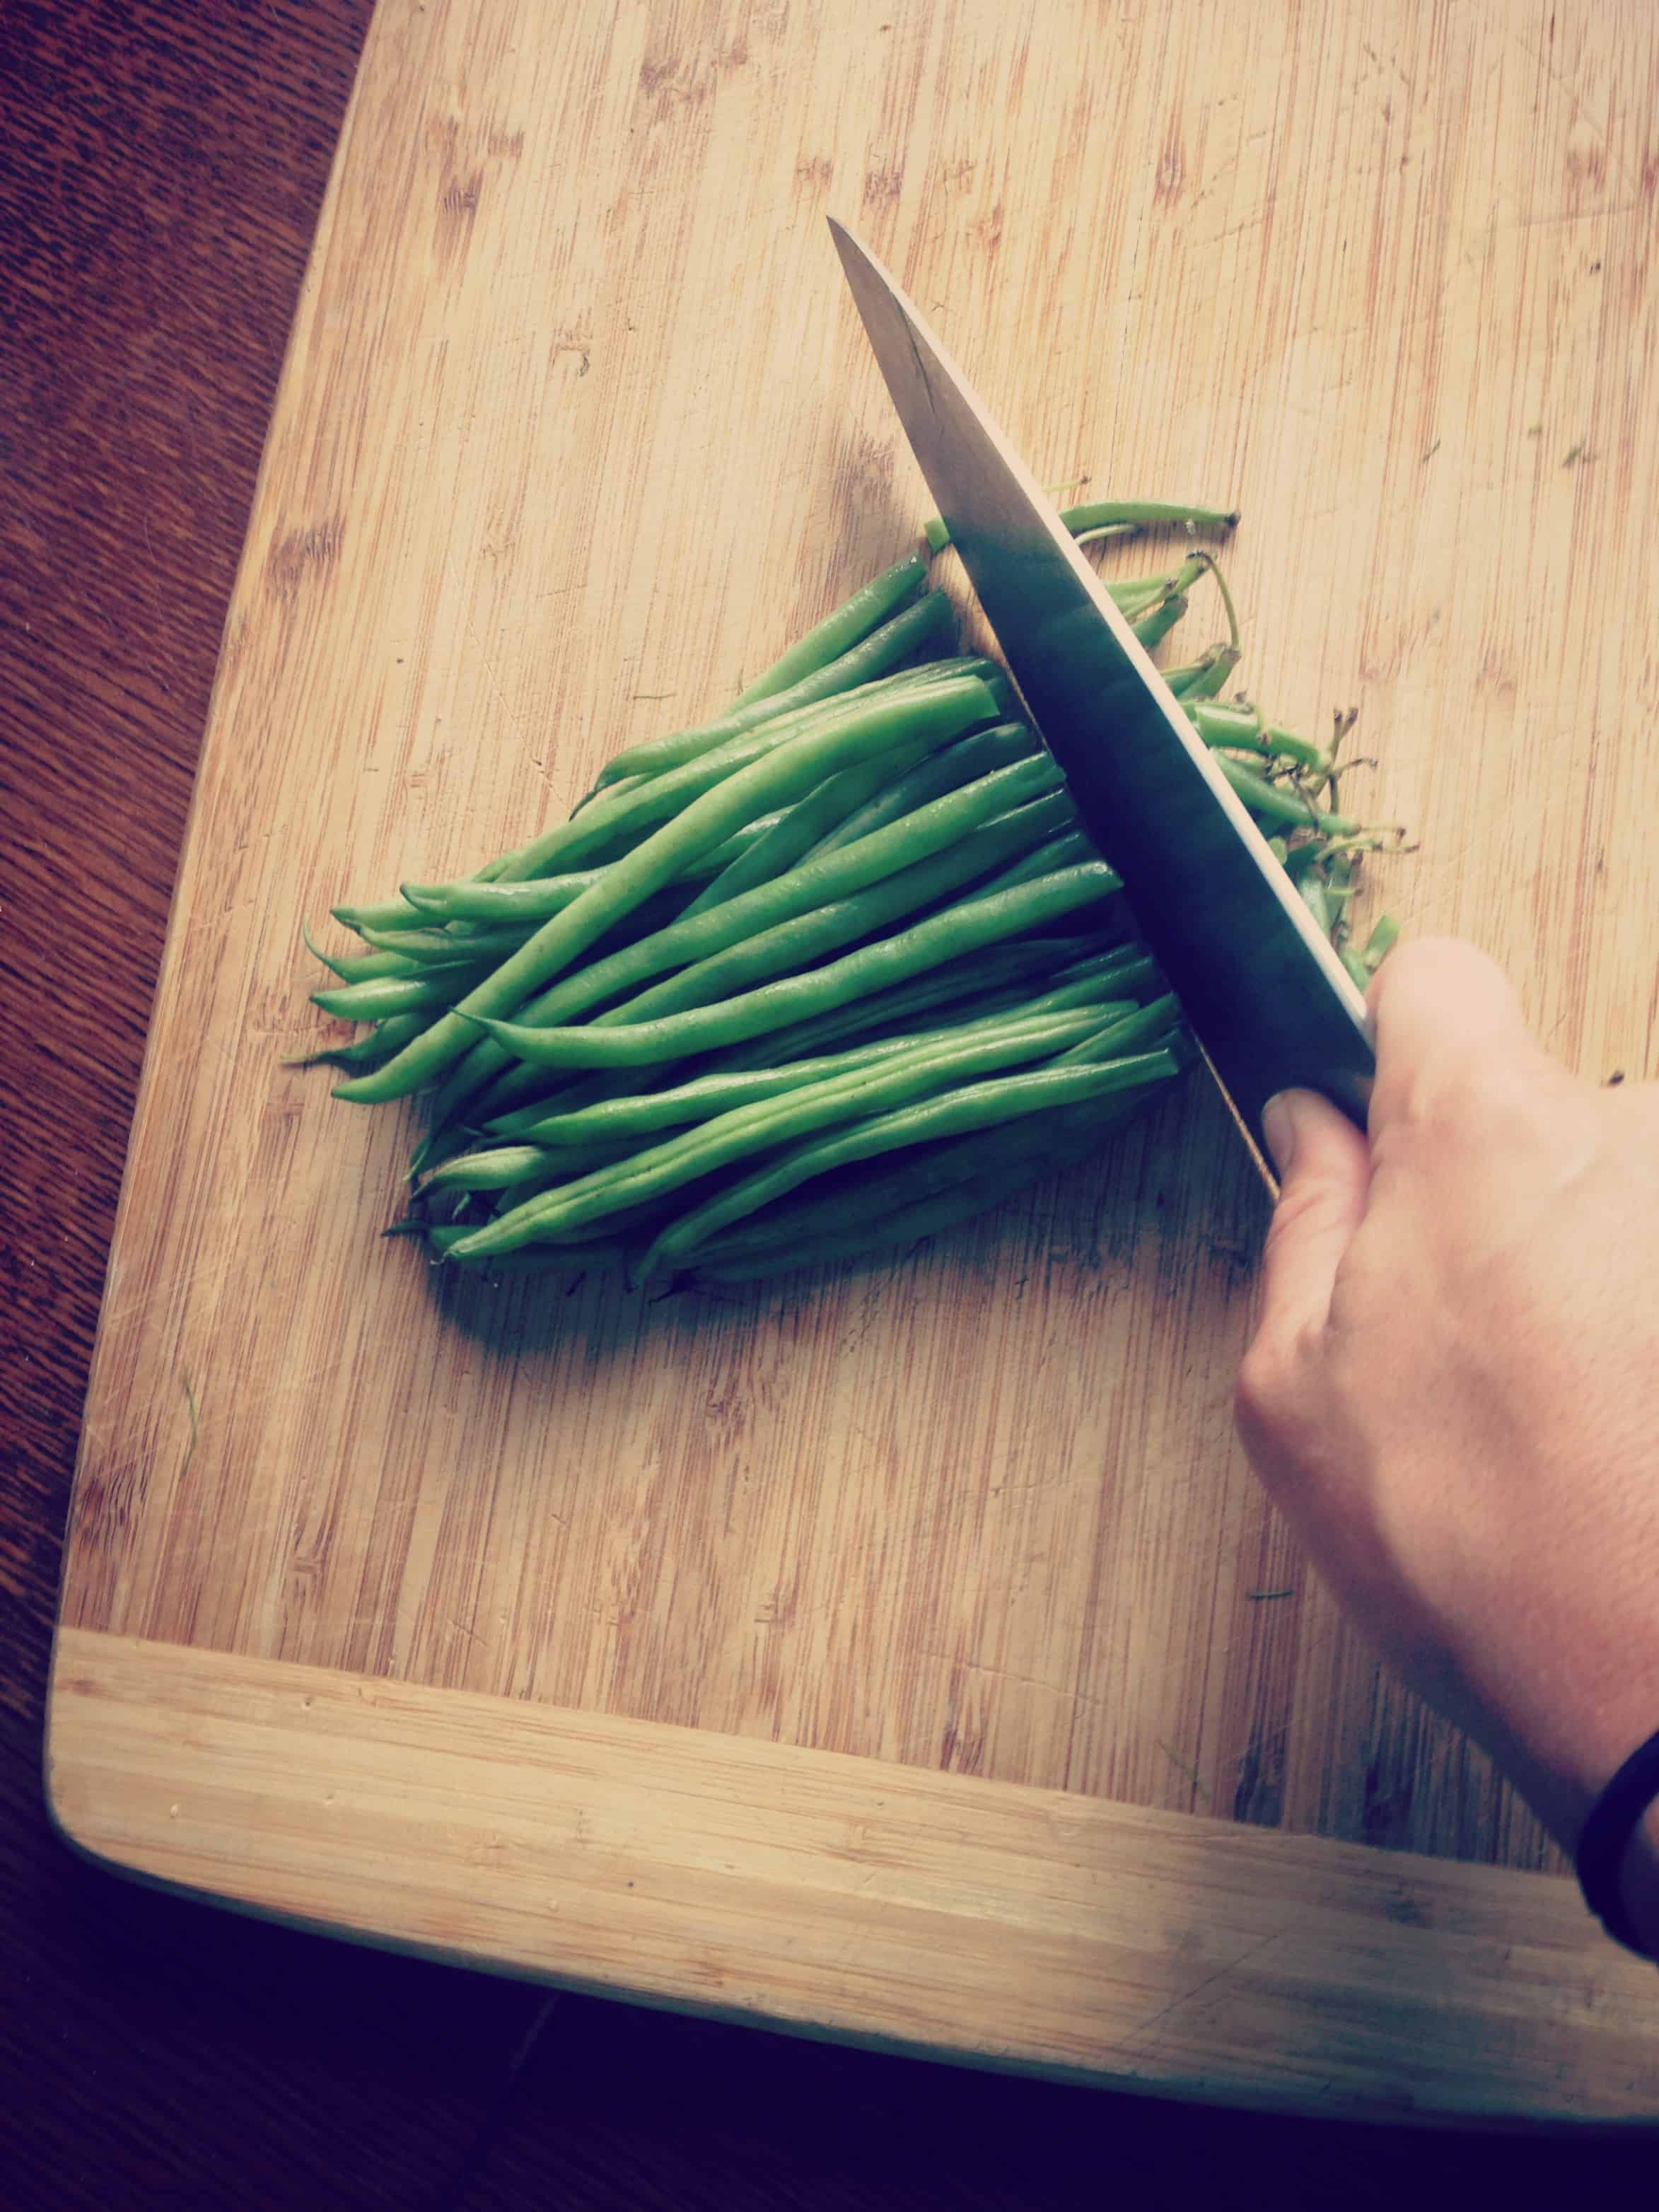 A knife ready to cut off one inch of green beans on a wooden cutting board.